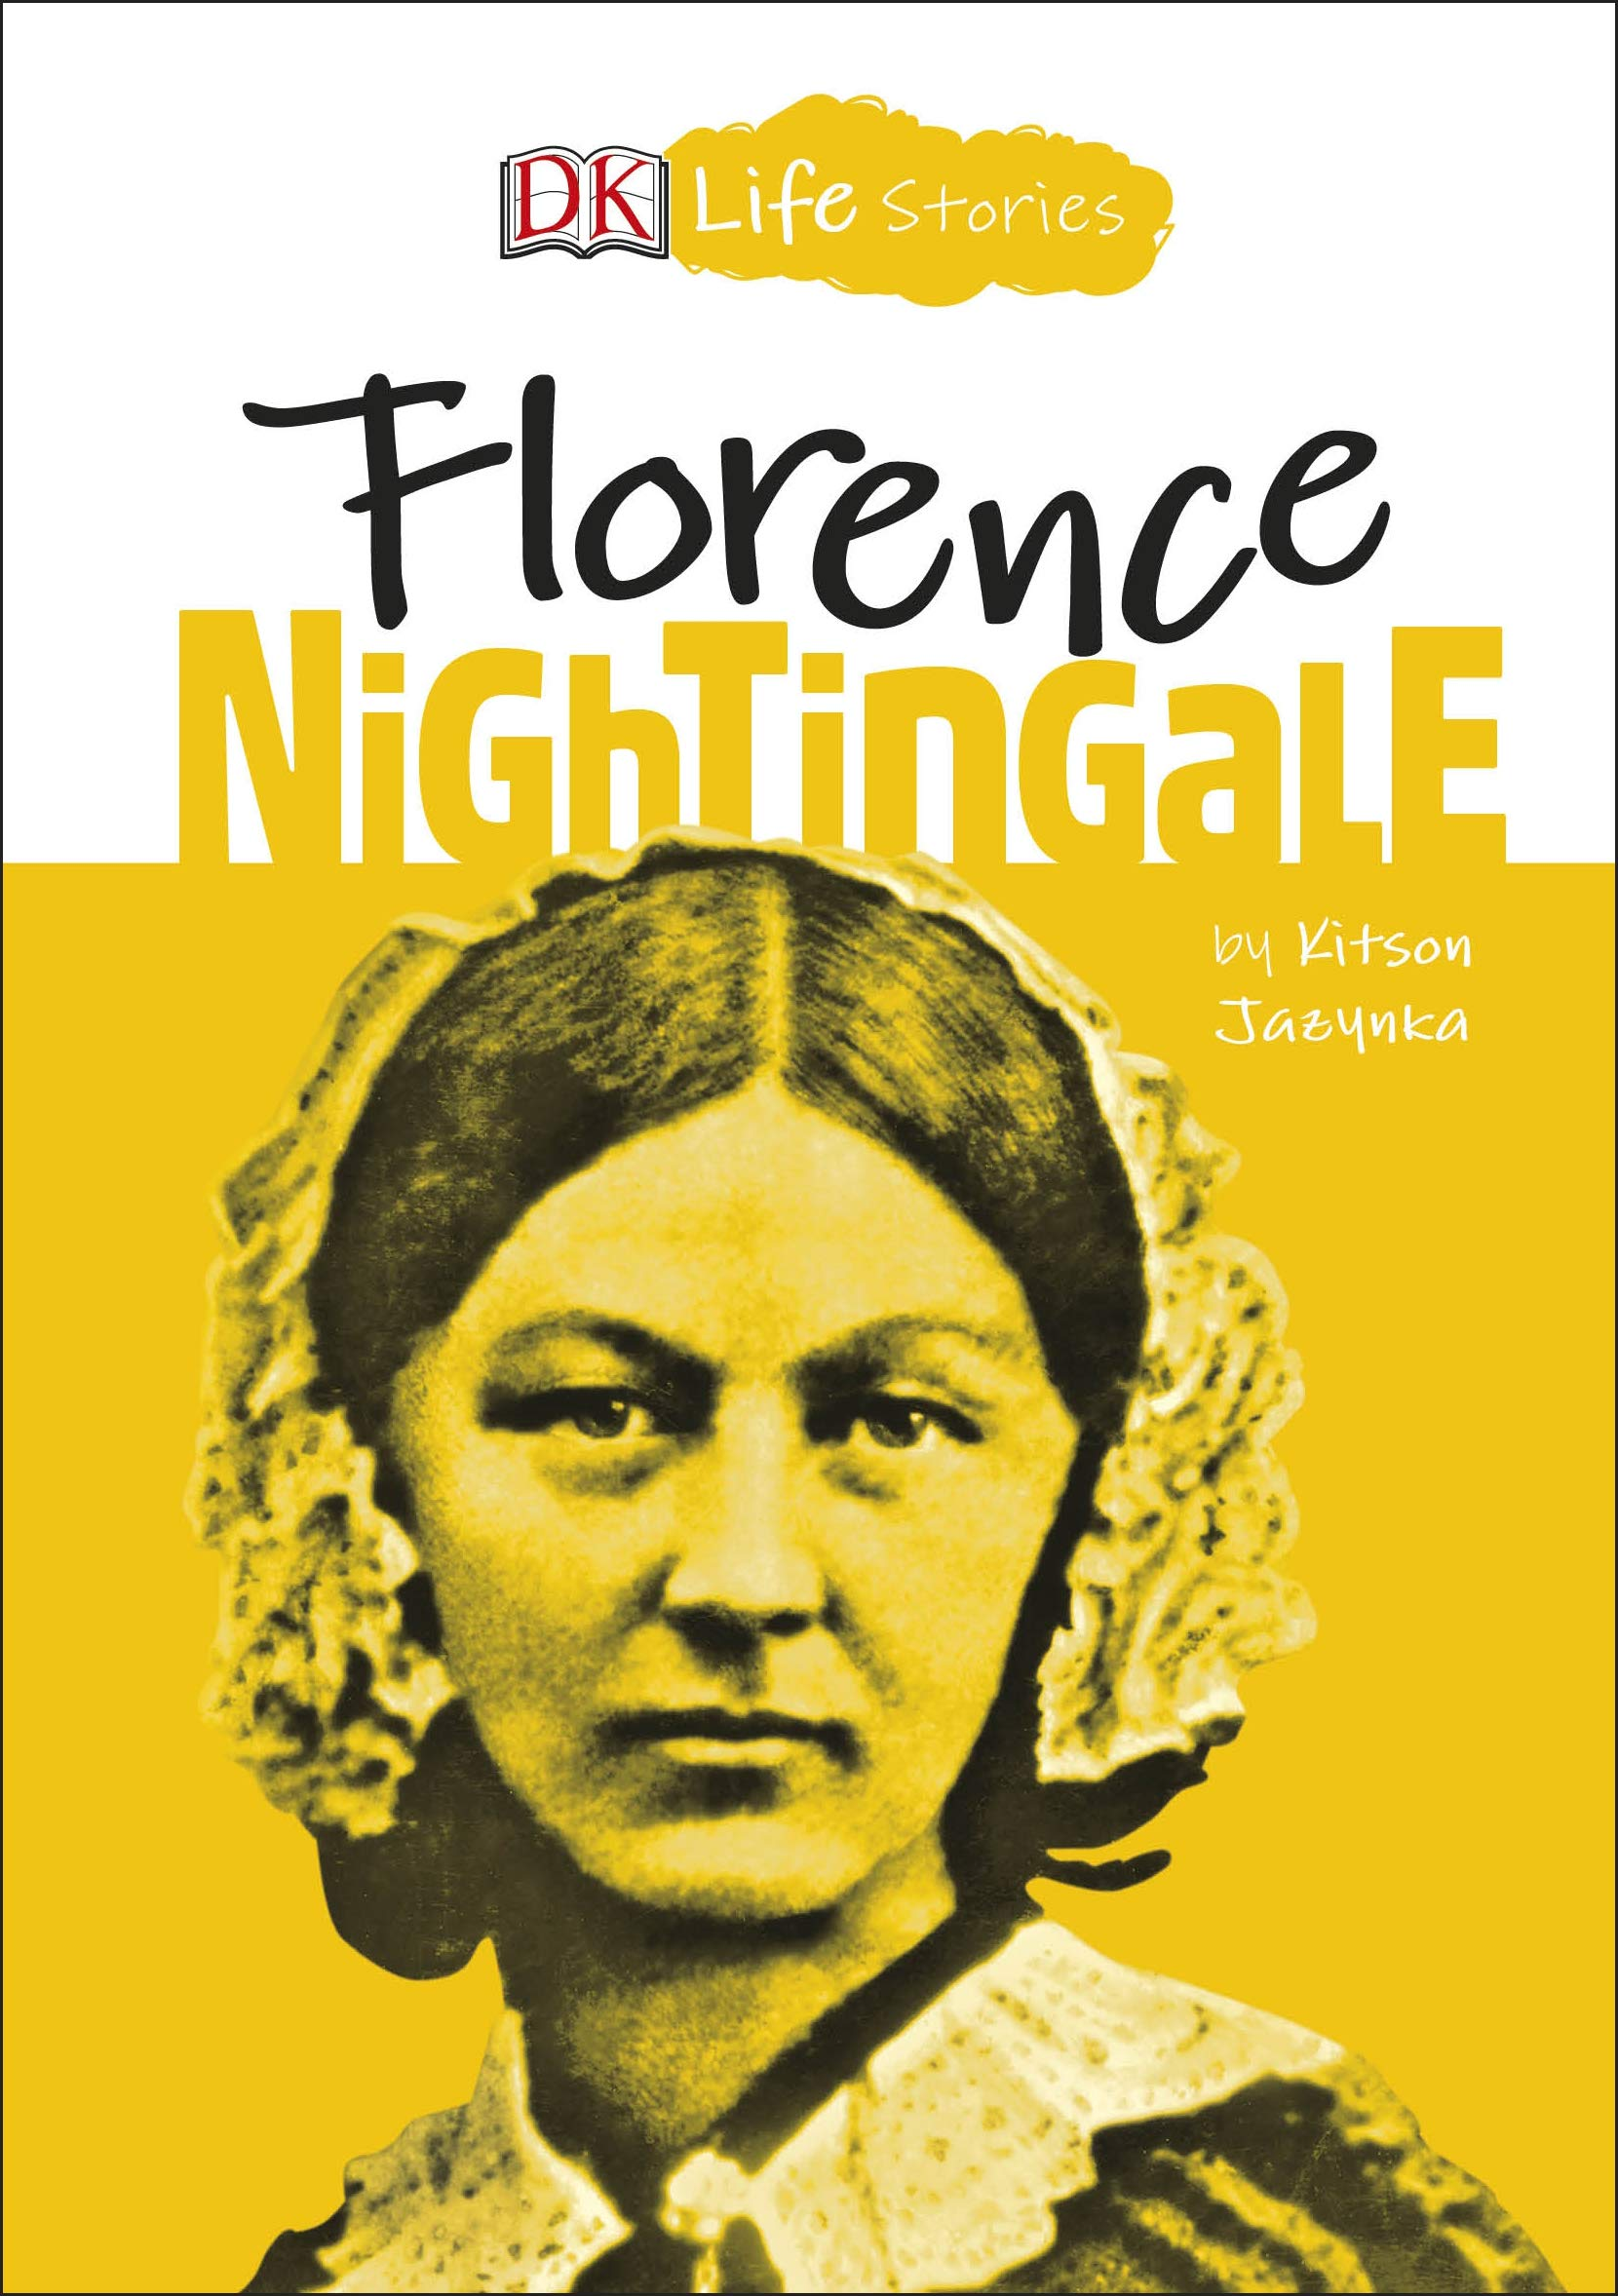 DK Life Stories: Florence Nightingale: Jazynka, Kitson, Ager, Charlotte:  9781465478443: Amazon.com: Books